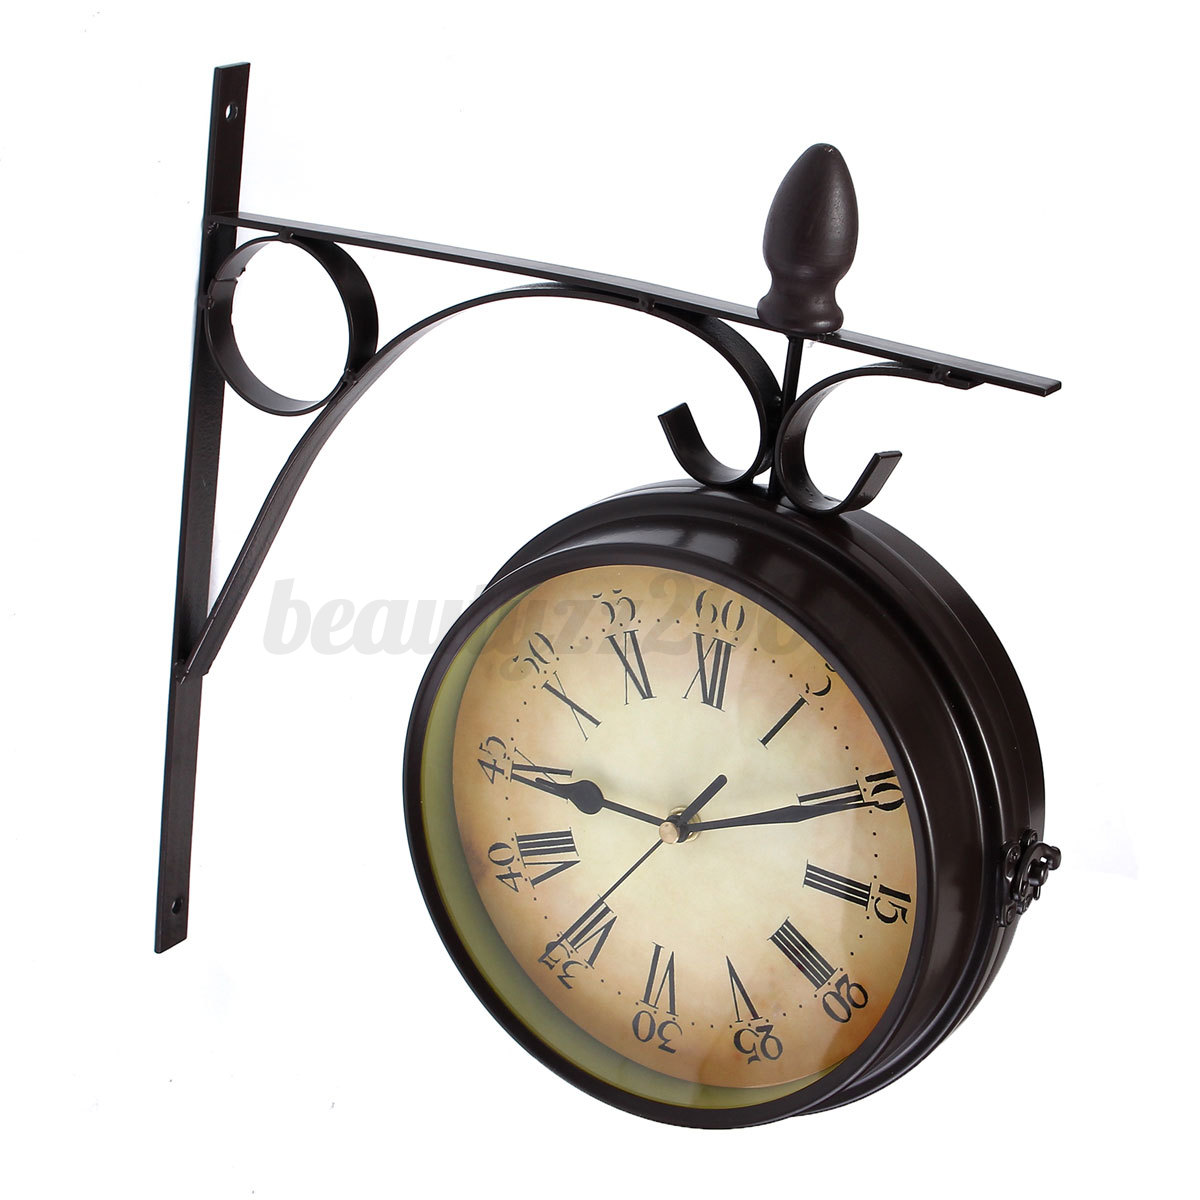 Mondaine Wall Clock Train Station Style Wall Clock